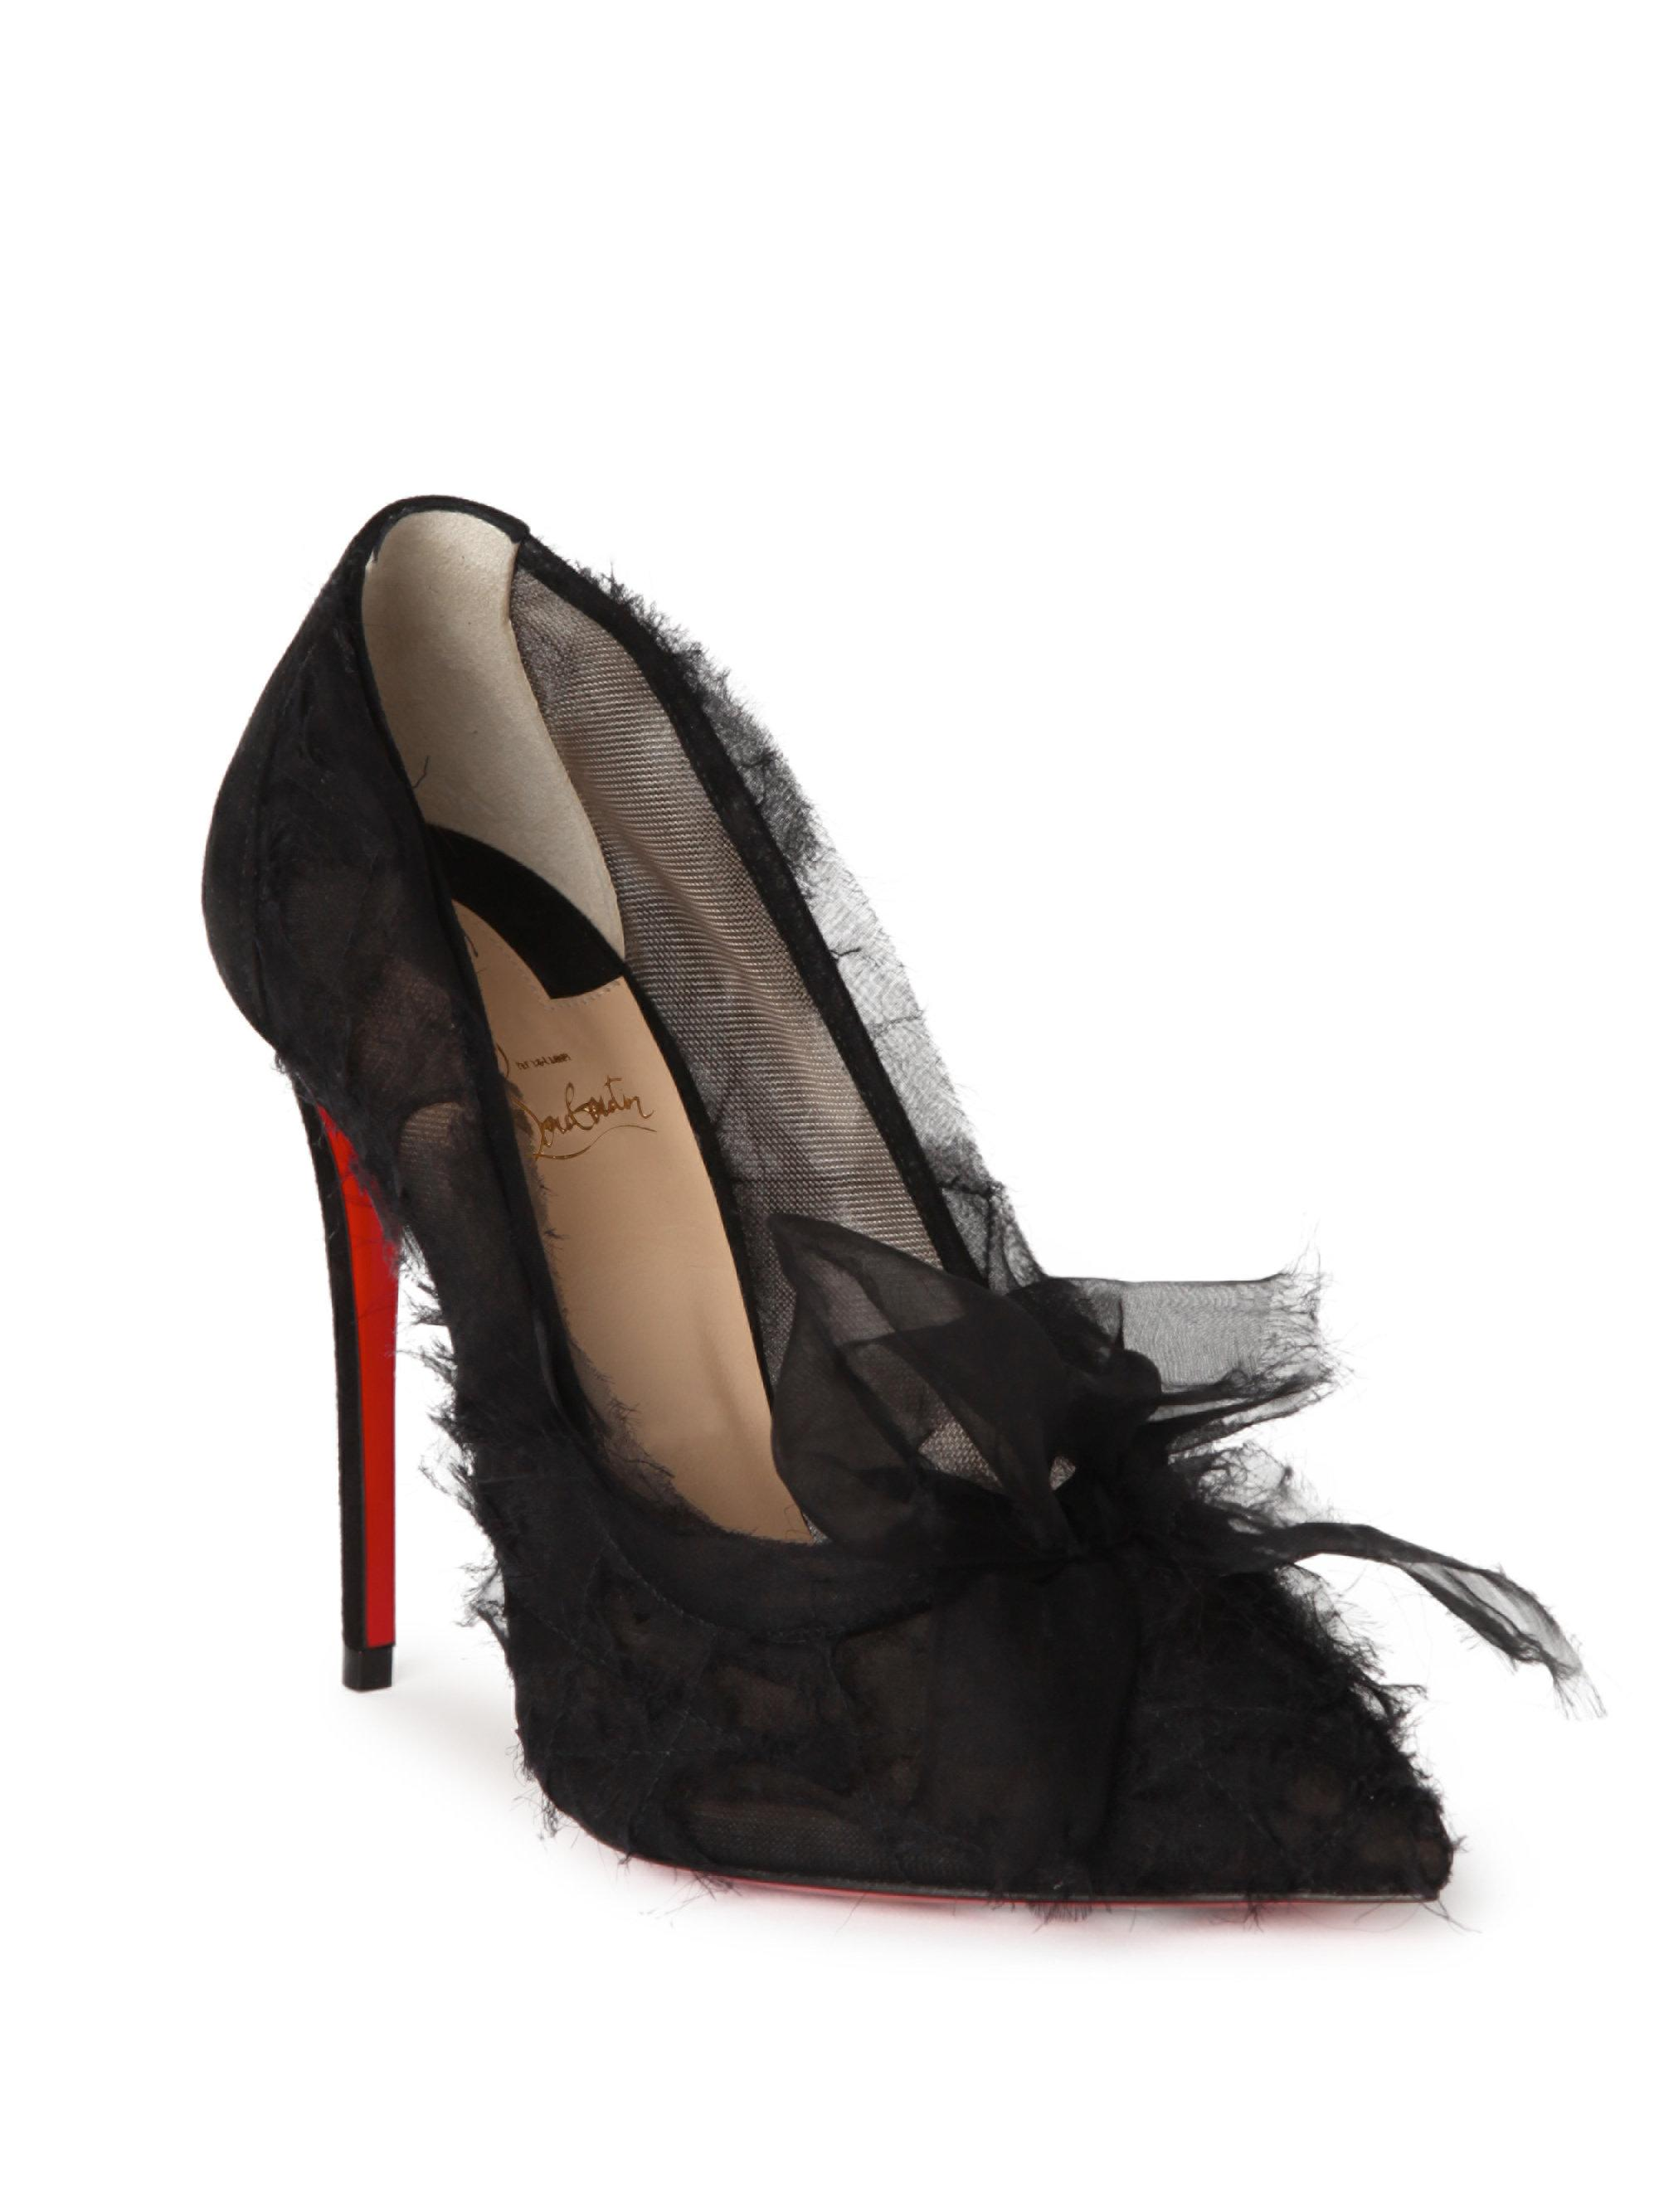 Christian Louboutin Pleated Chiffon Platform Pumps cheapest price sale online free shipping finishline outlet with mastercard UR2tco5q